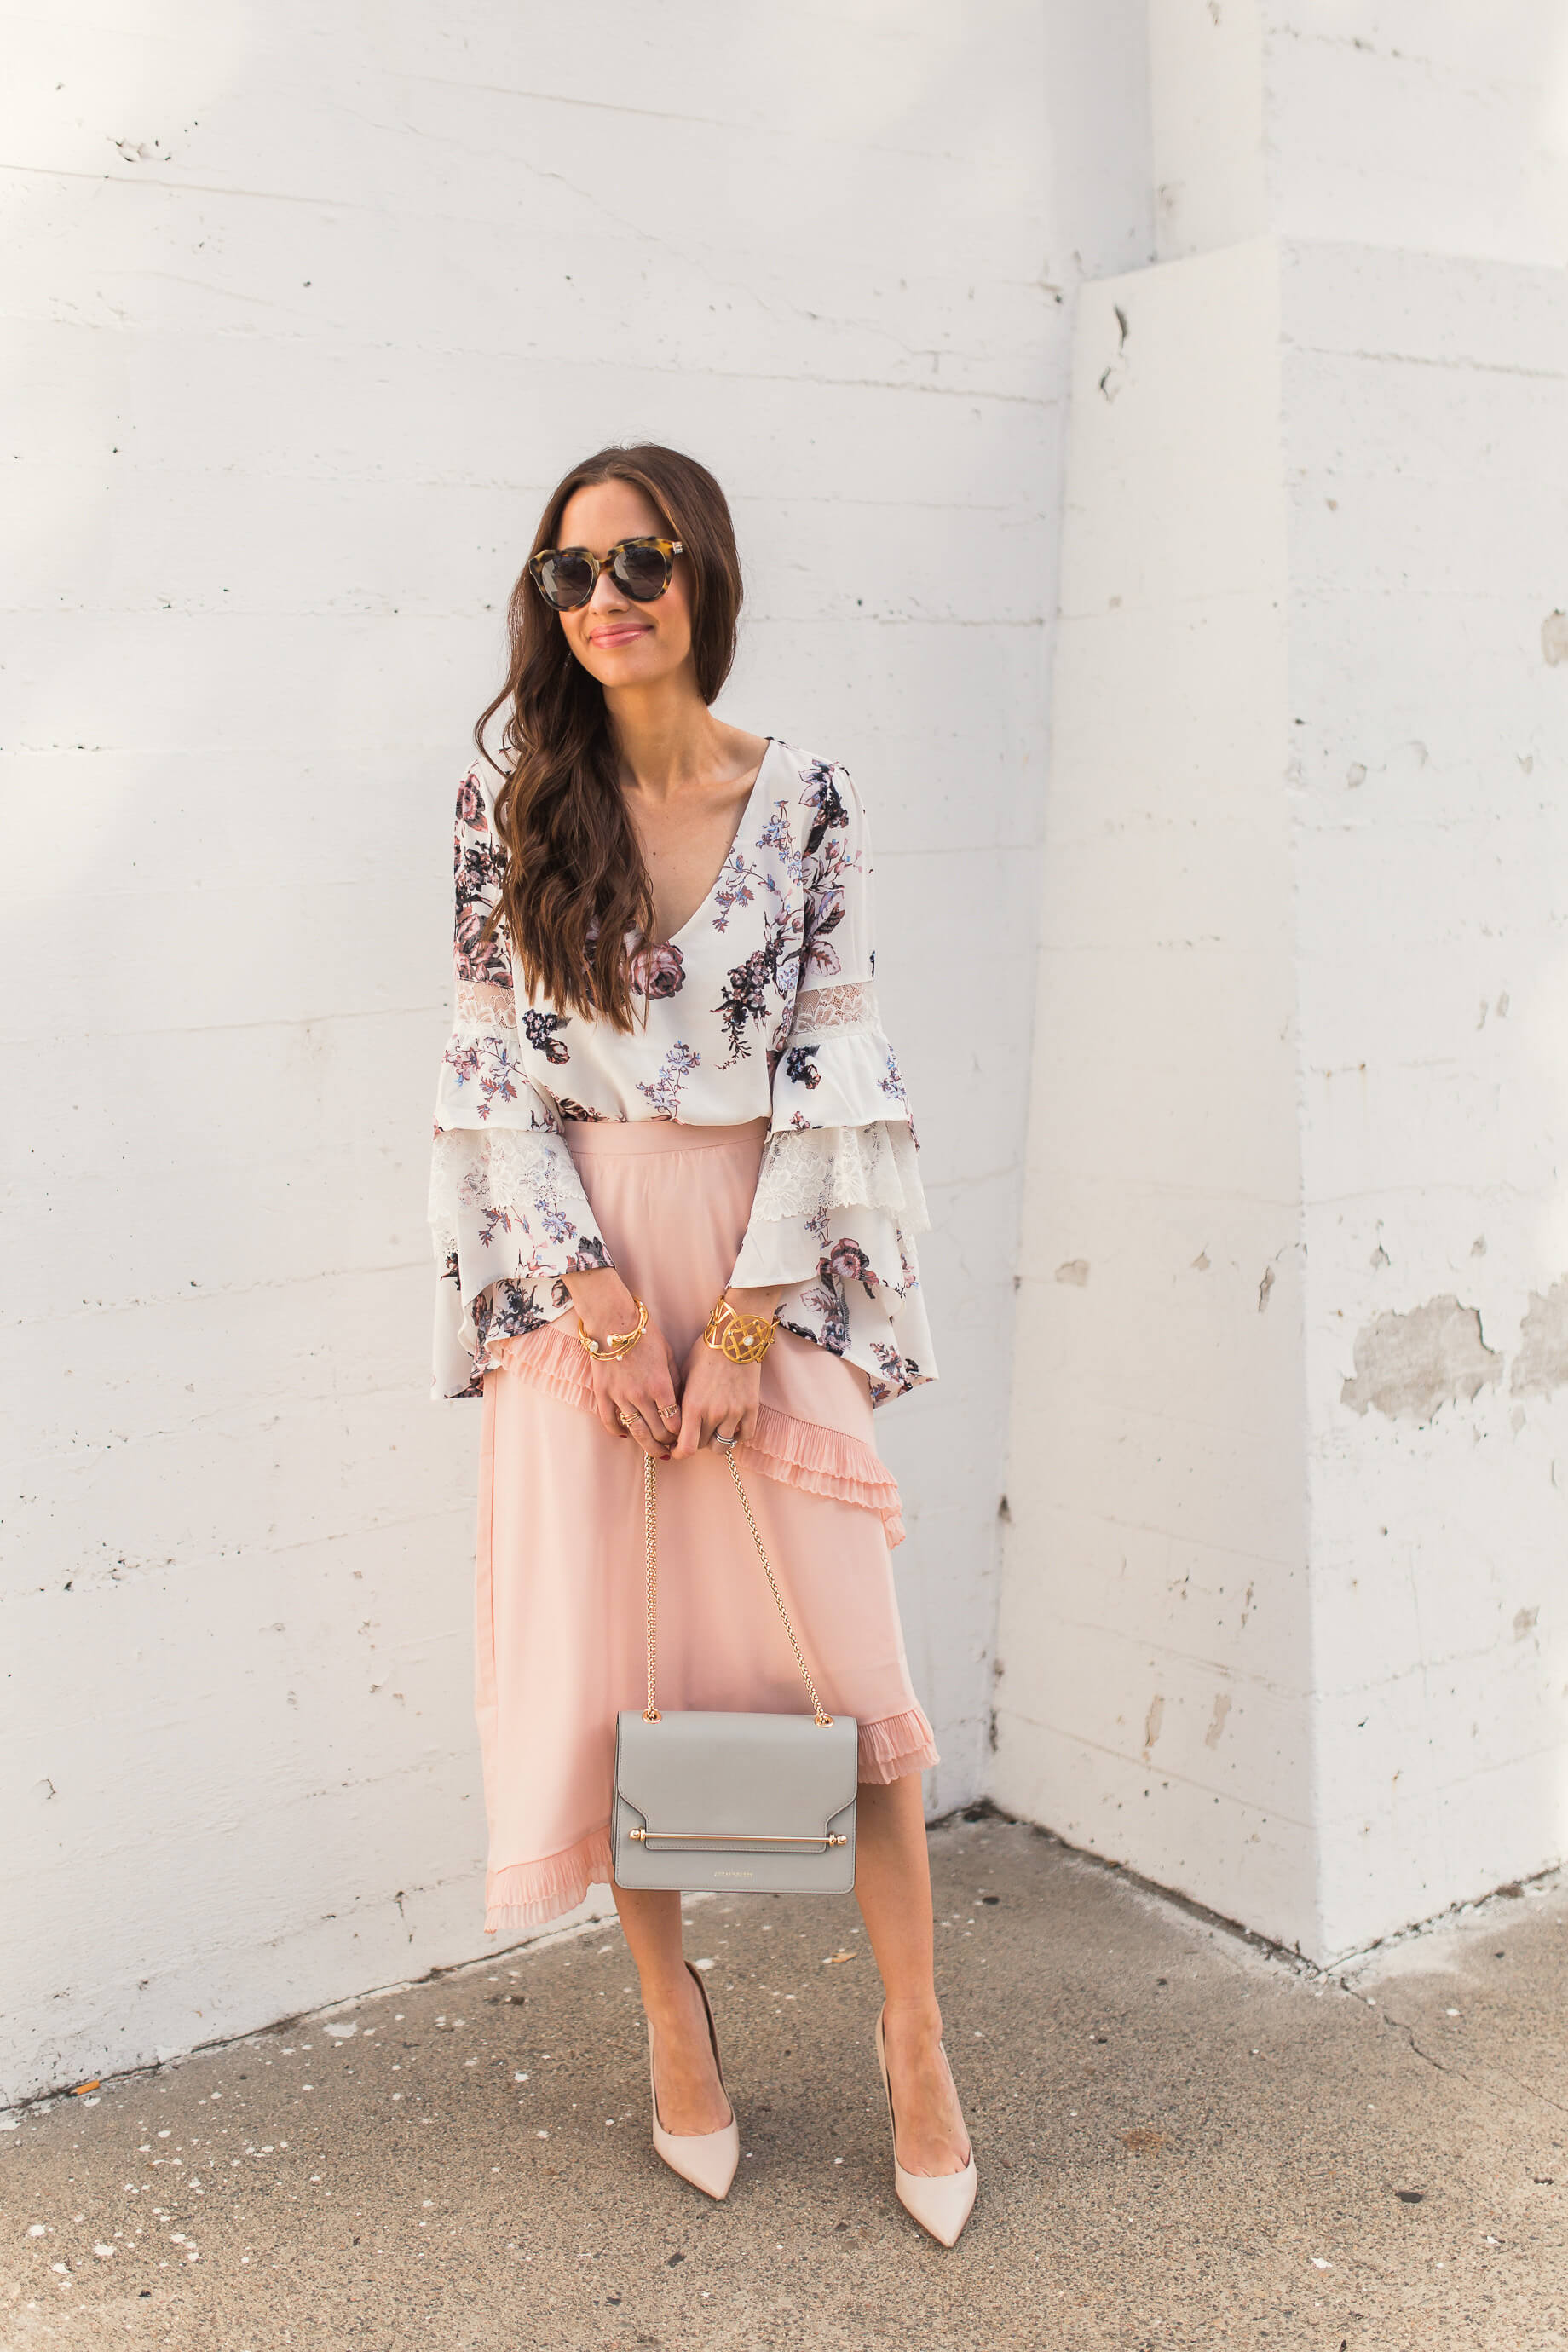 styling a ruffled skirt for spring - M Loves M OC Fashion and Lifestyle Blogger @marmar